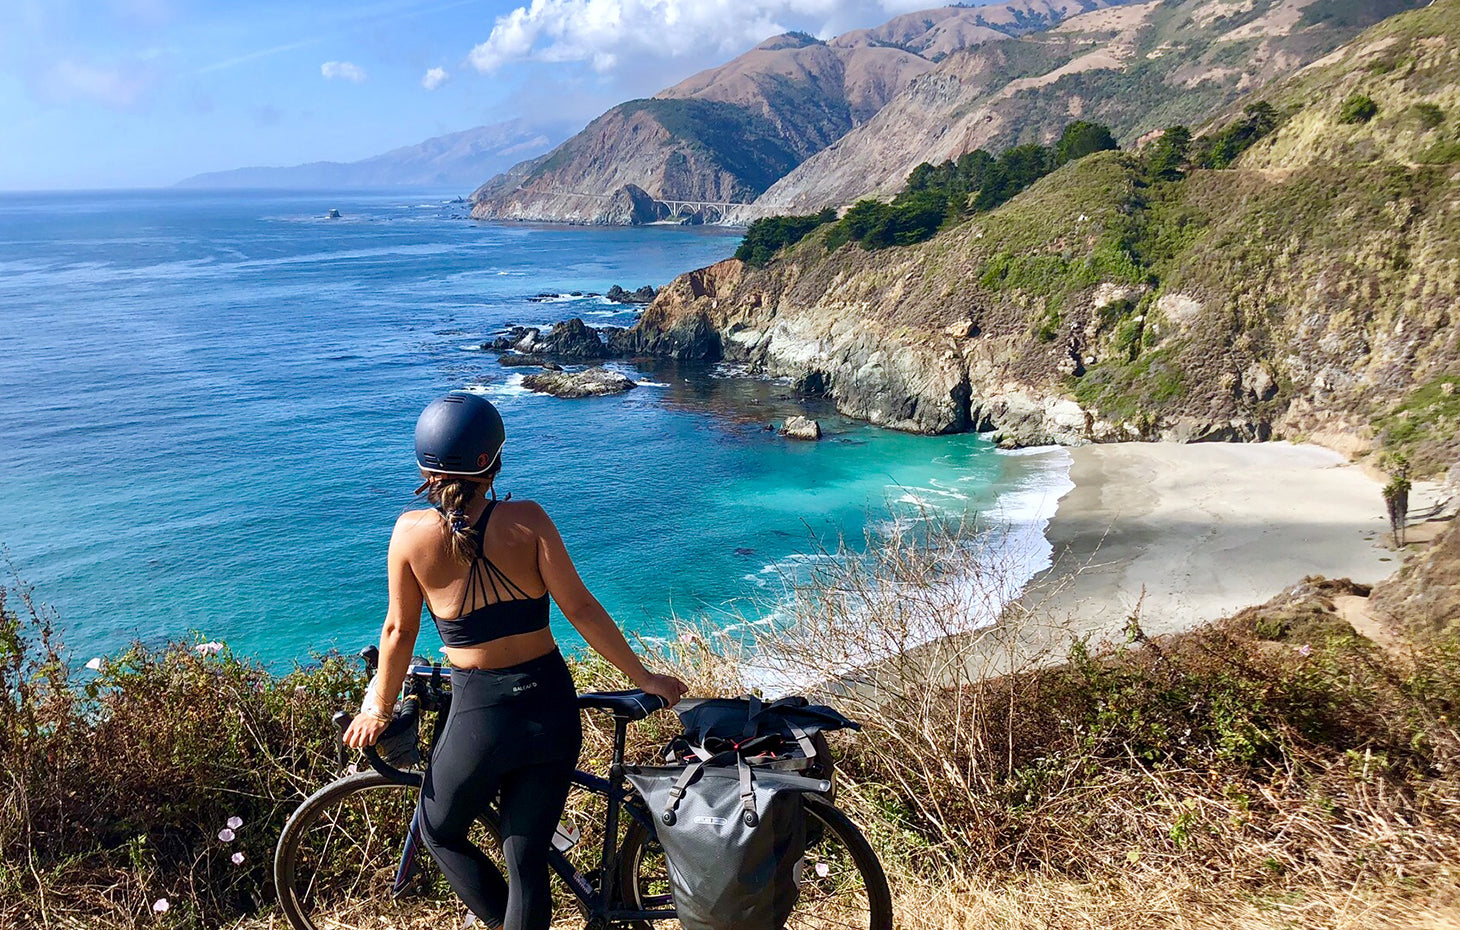 AN EPIC RIDE WITH LAUREN HANANO